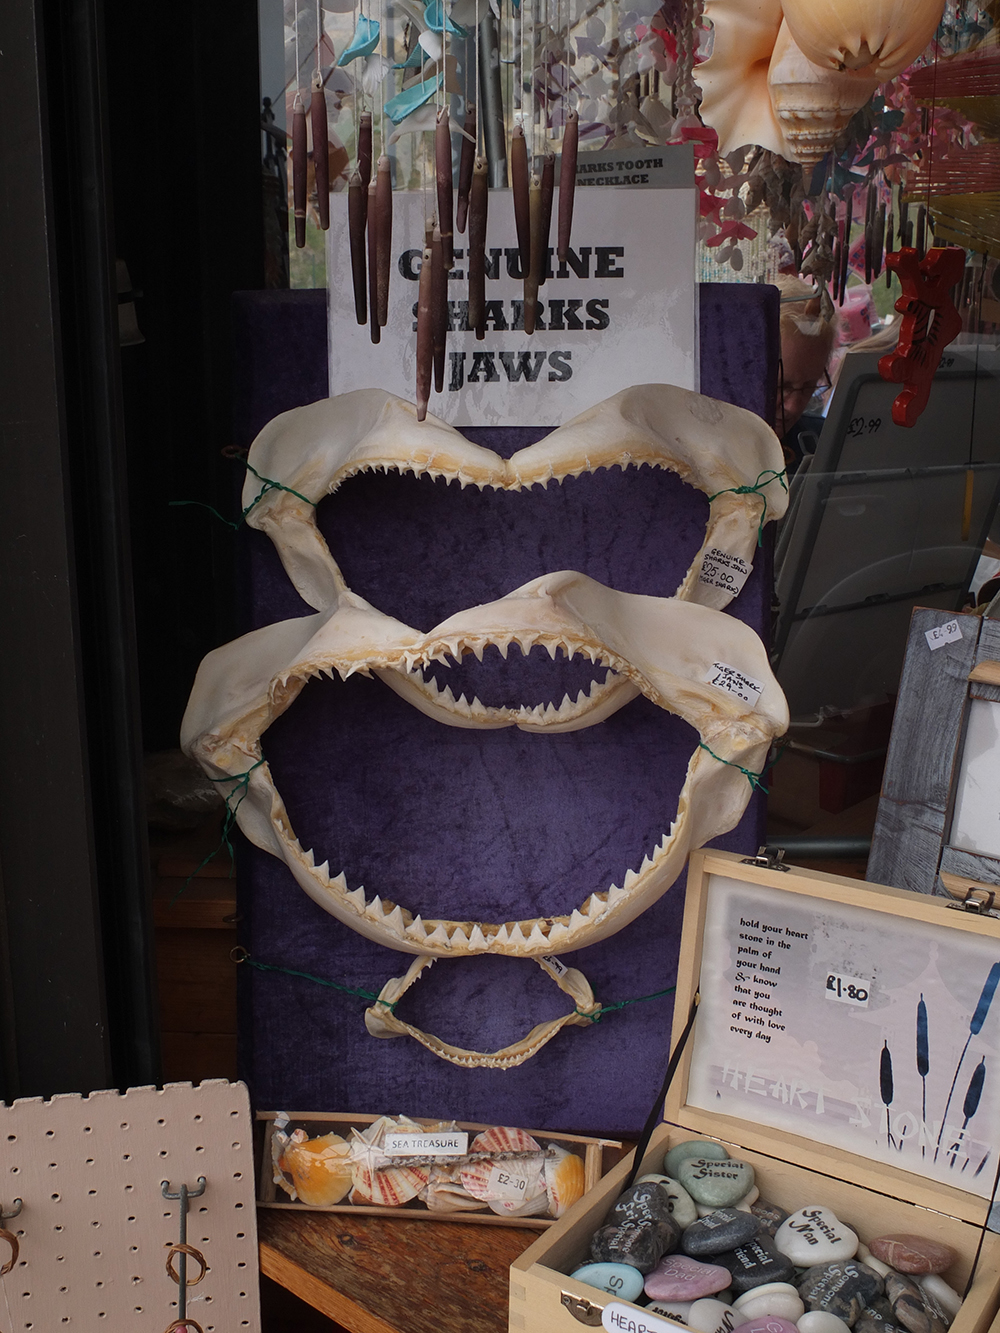 Listed as 'near threatened' by the IUCN, these Tiger Shark jaws were on sale in the UK. I was asked niot to go into the shop and shout.